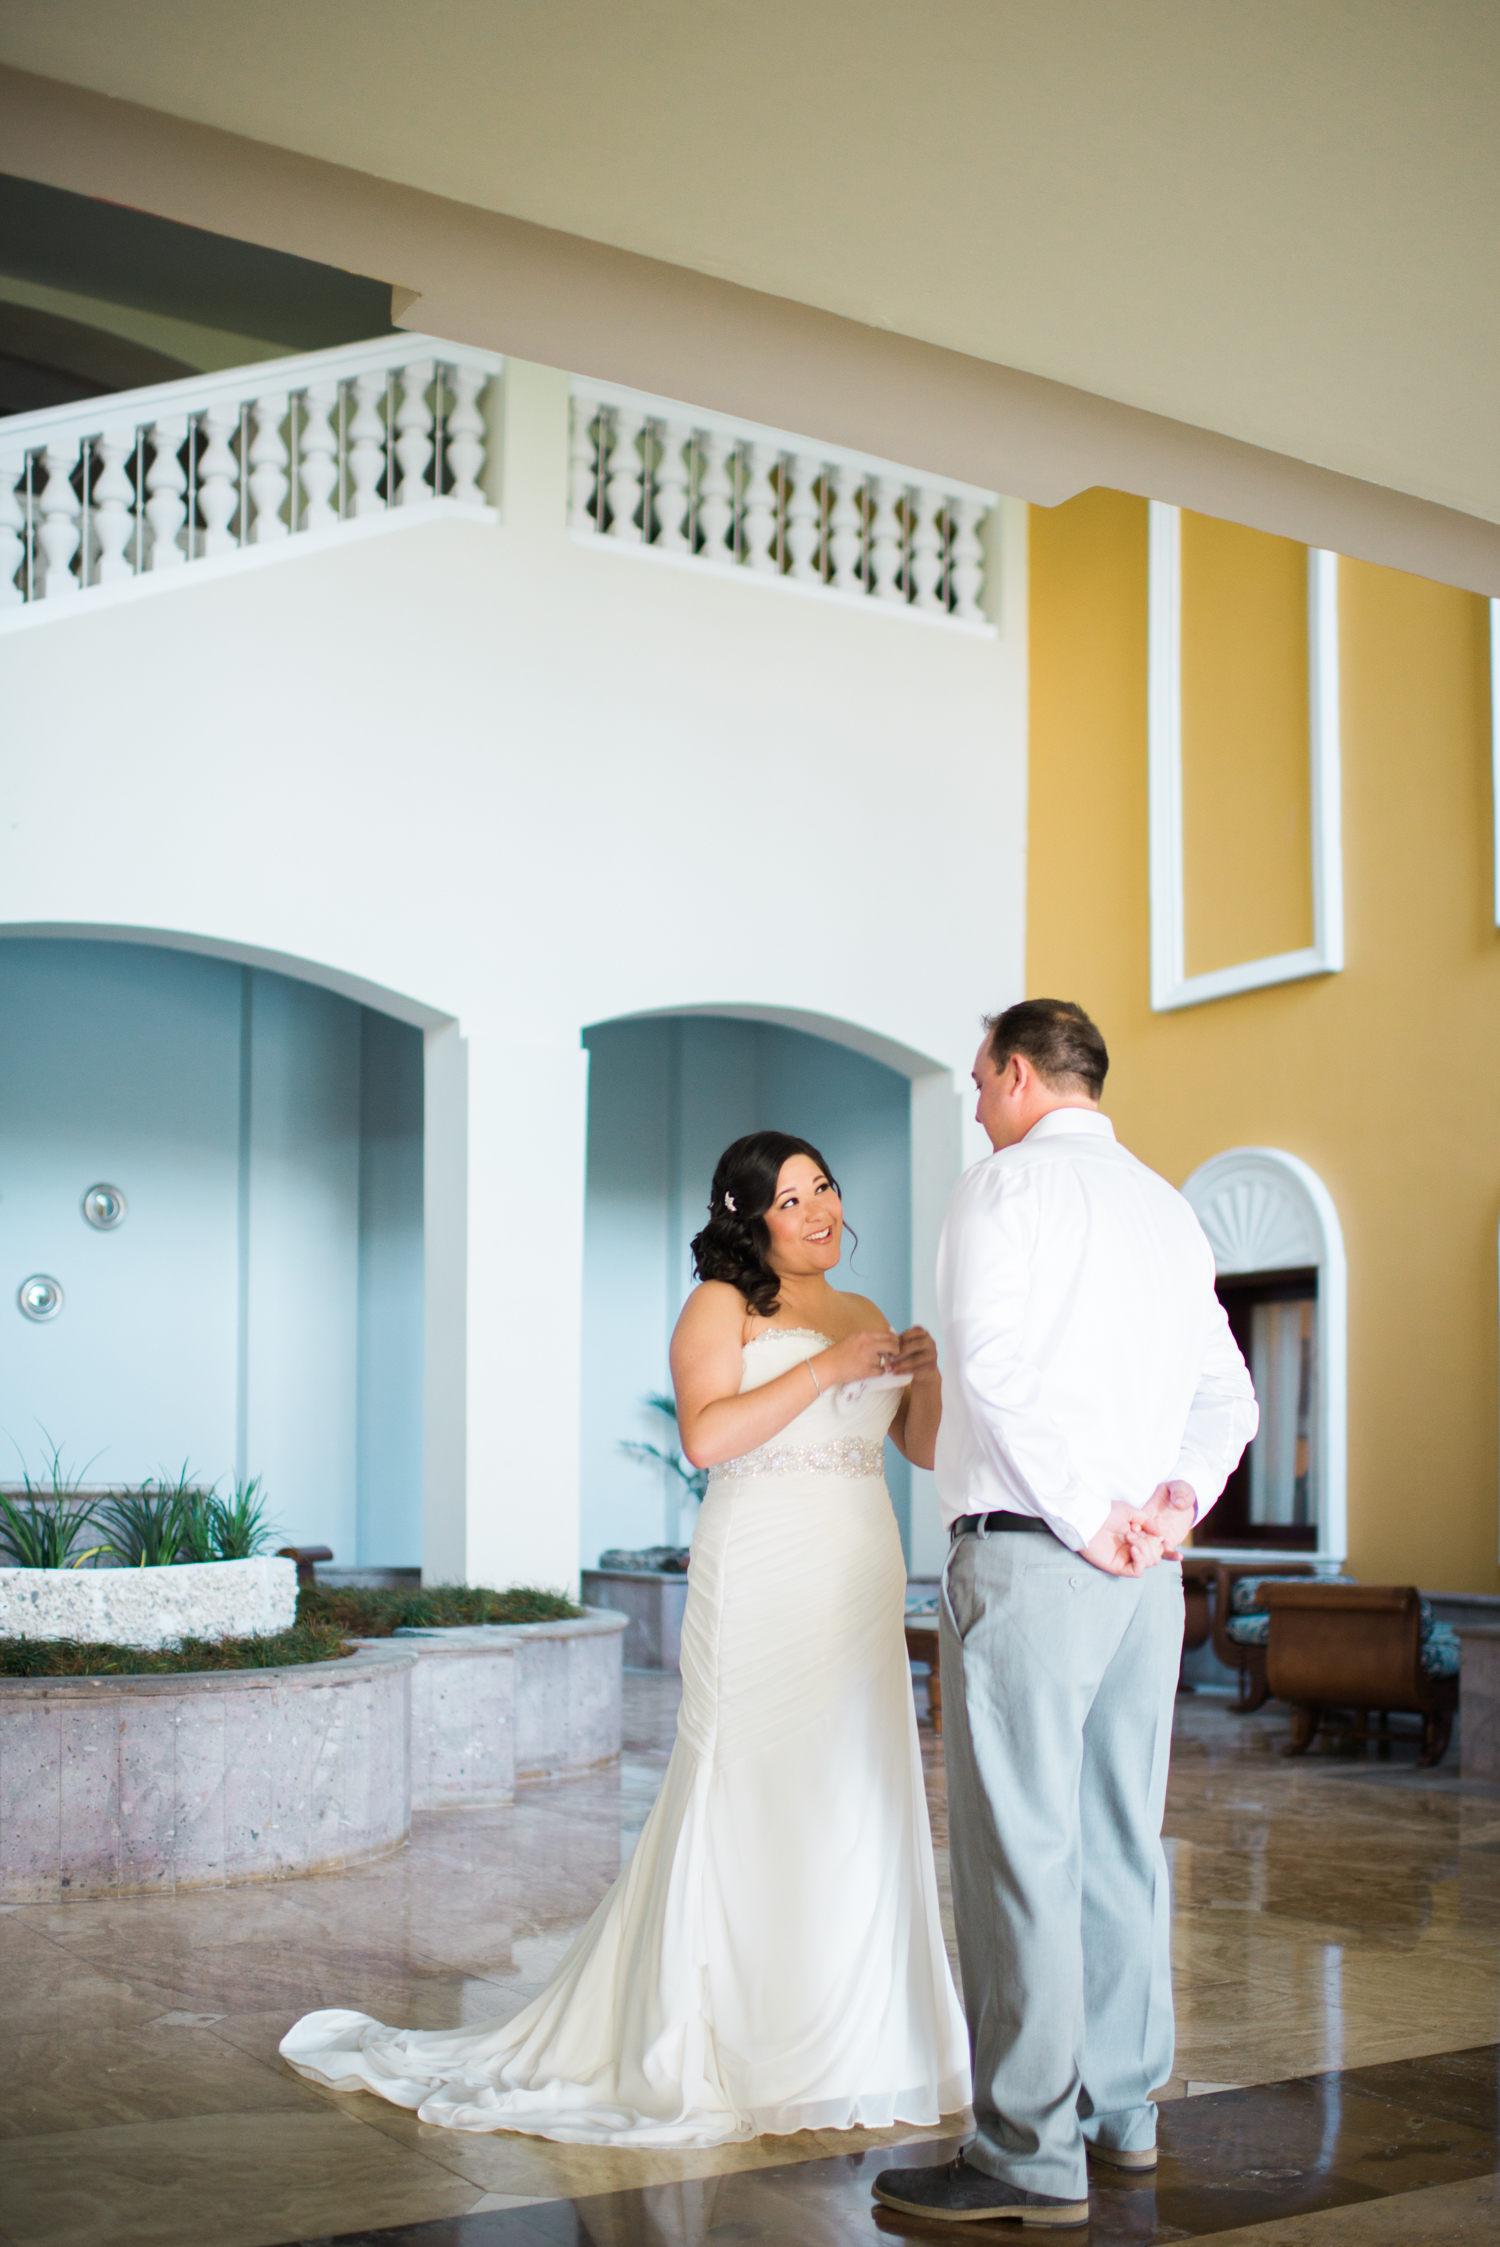 JadeandRyan-Montego-Bay-Jamaica-Wedding-Iberostar-Resort-Beach-37.jpg